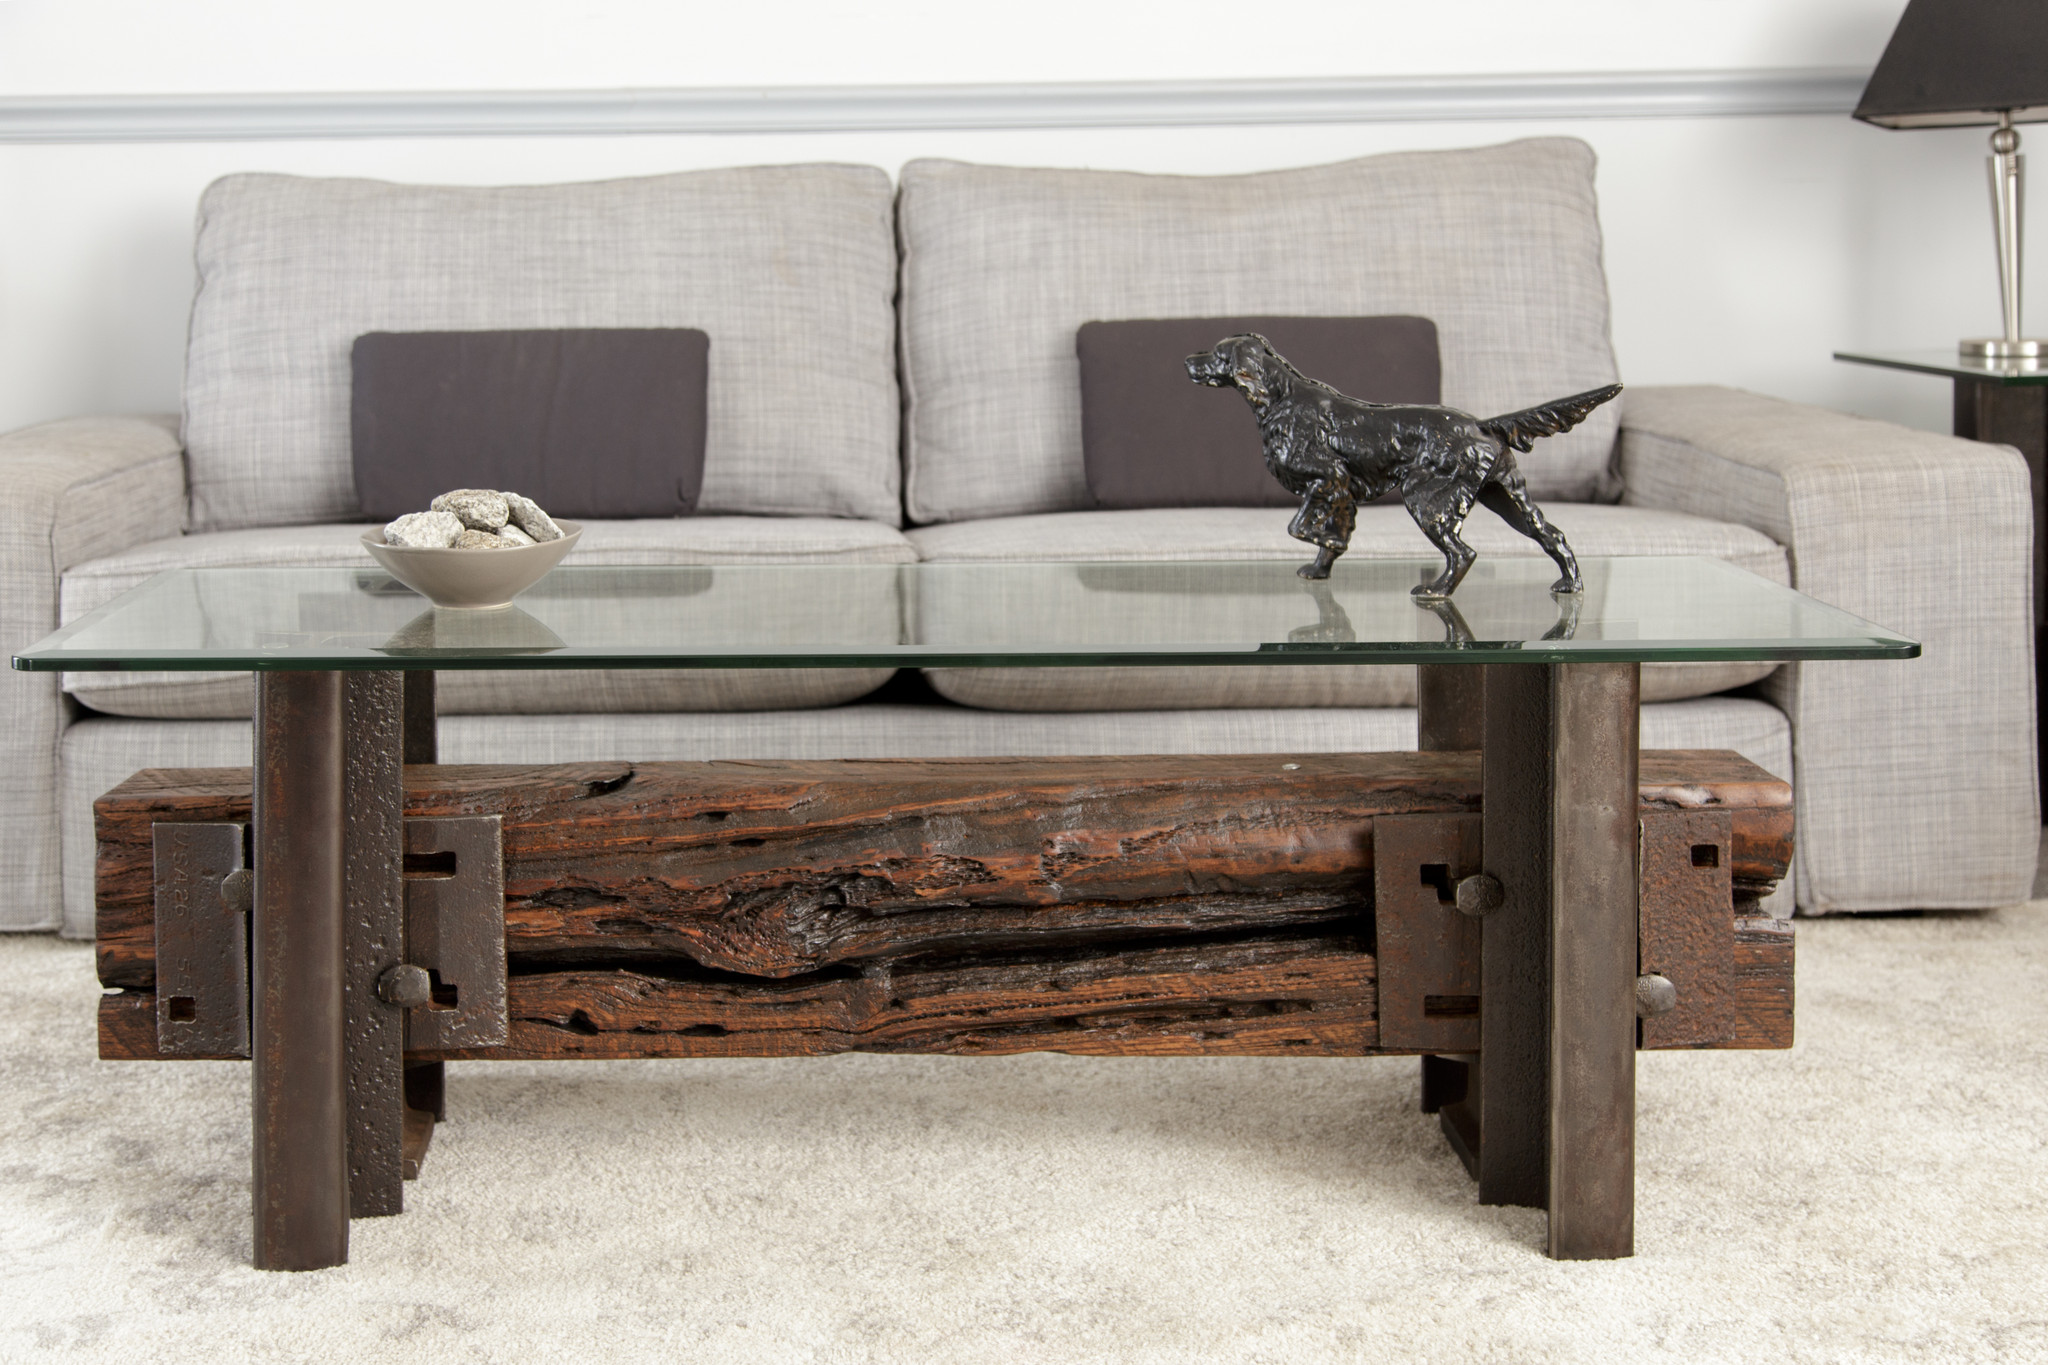 Railroad-themed wood timber and steel coffee table